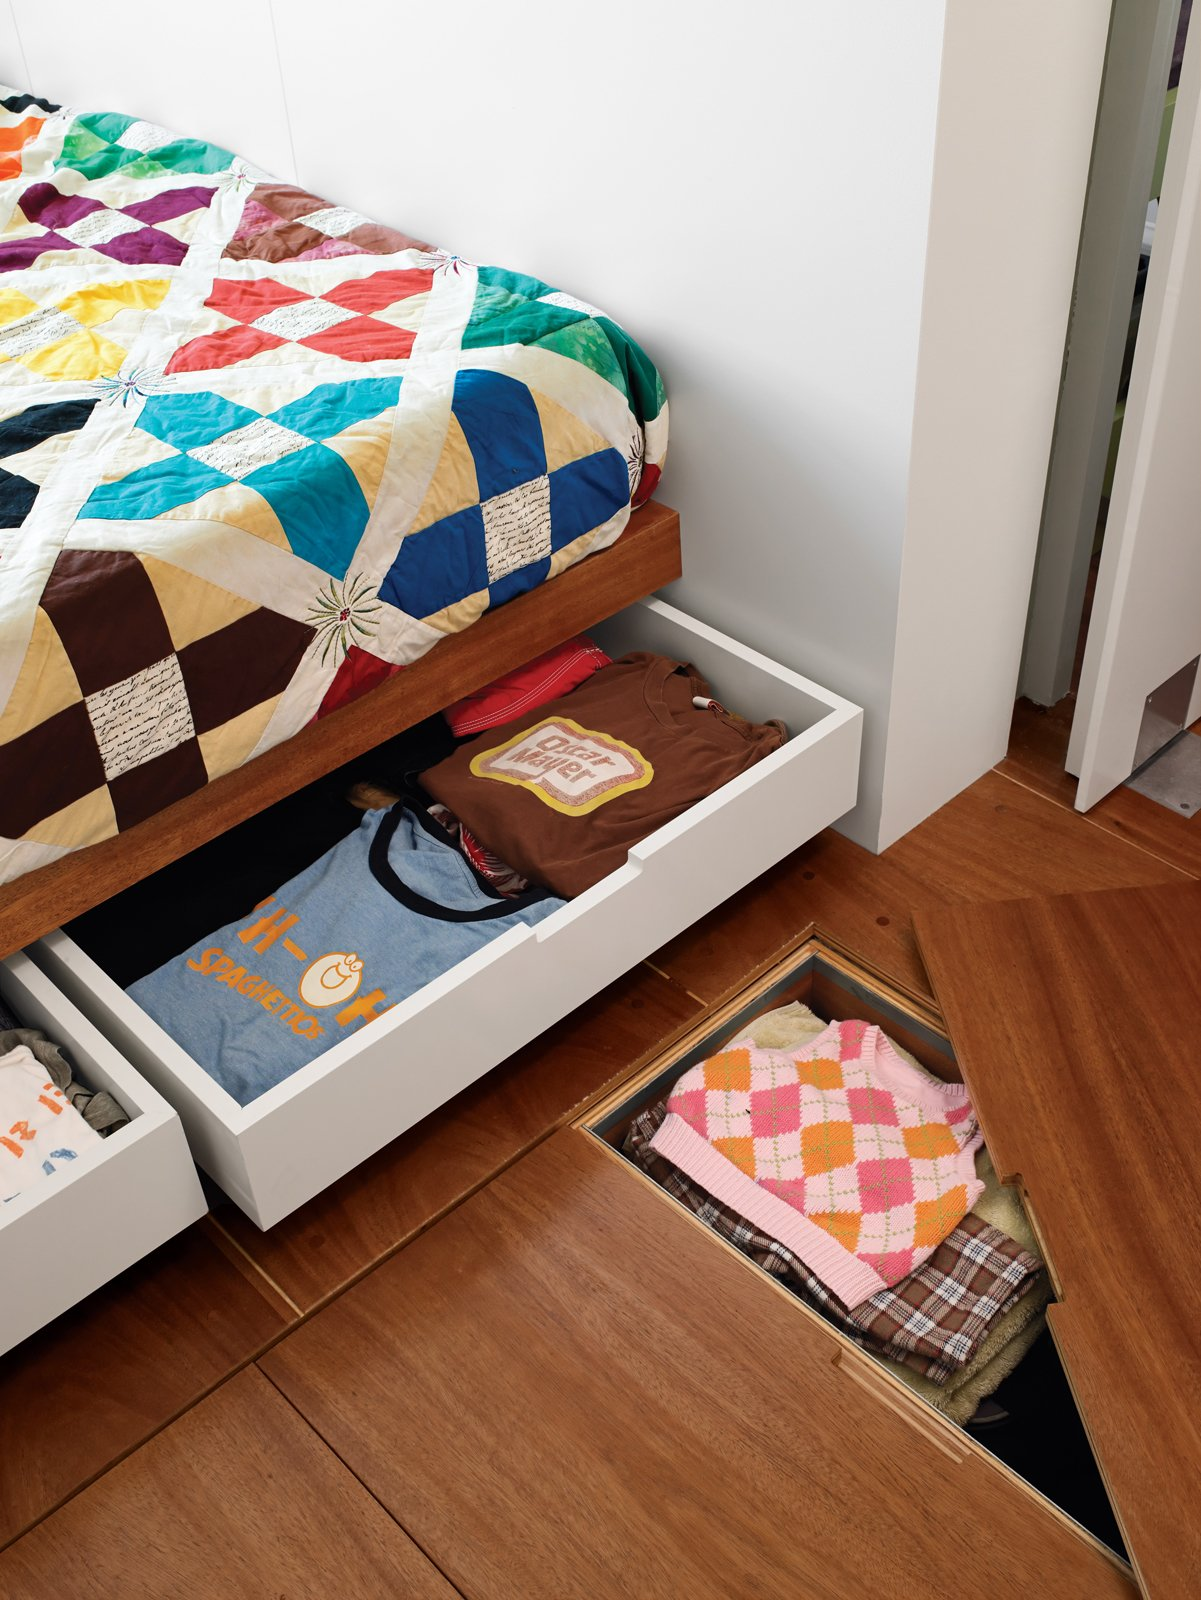 Storage under the bed and floor hides clutter in the master bedroom.  Photo 2 of 11 in 10 Ways to Solve Storage Problems in Small Spaces